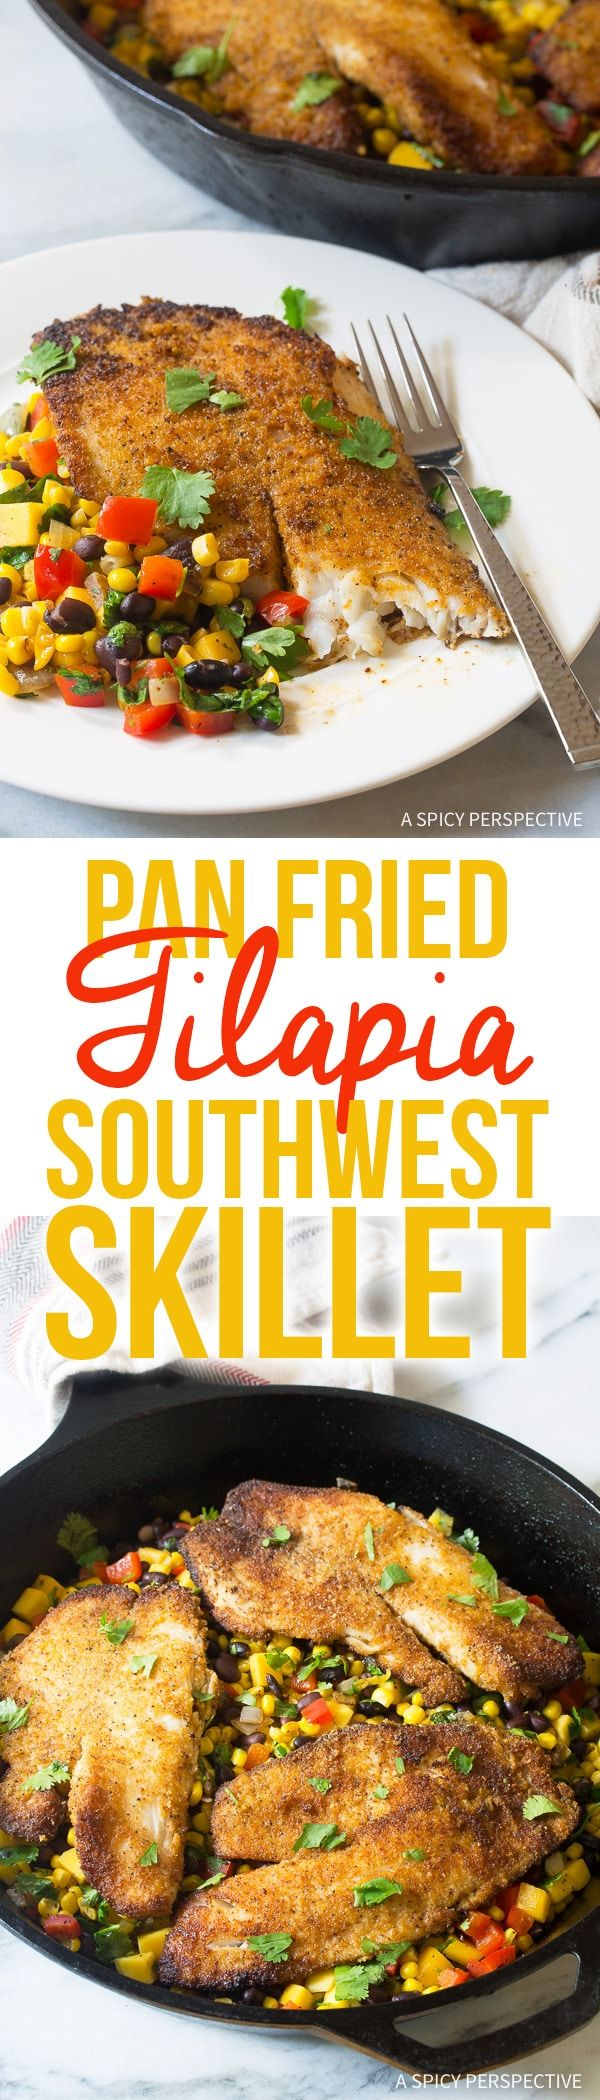 Pan Fried Tilapia Southwest Skillet Recipe - An easy and healthy one-pan dinner you can make any night of the week! Bold and zesty with a built-in side dish. via @spicyperspectiv